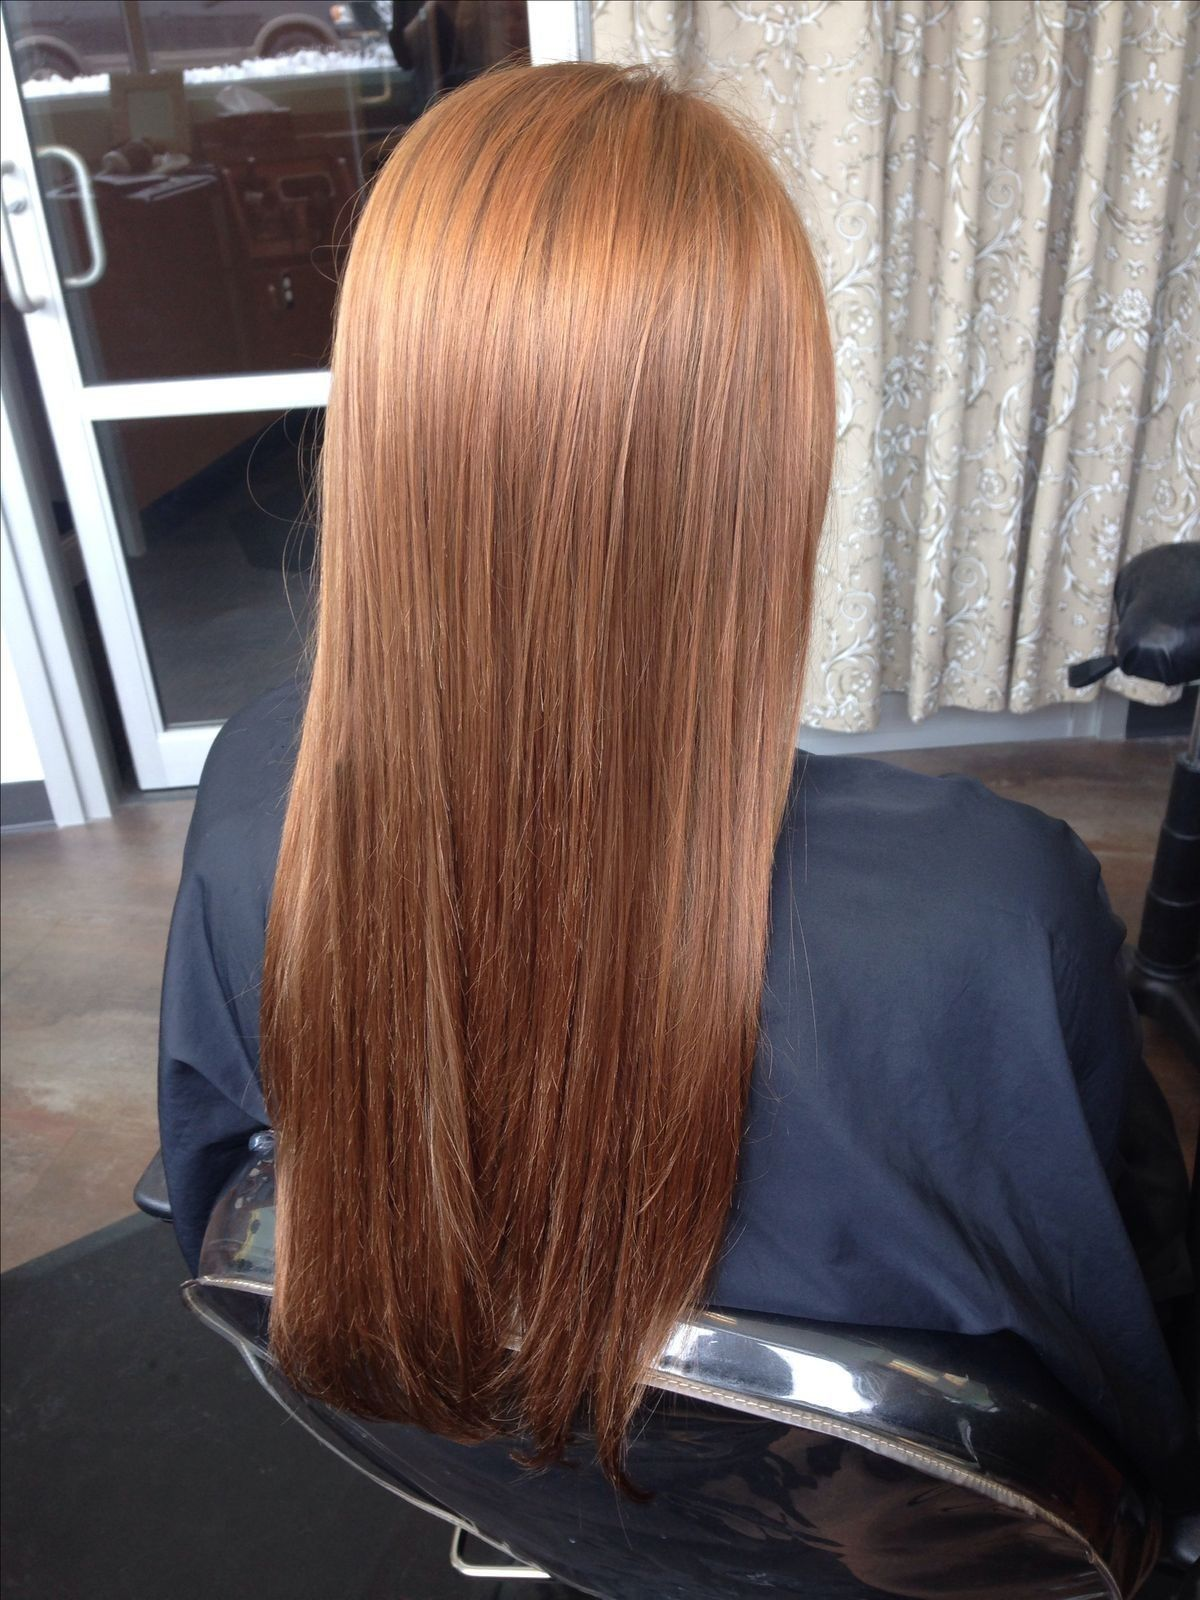 Pin By Megpie Dudds On Hair And Beauty Pinterest Hair Coloring